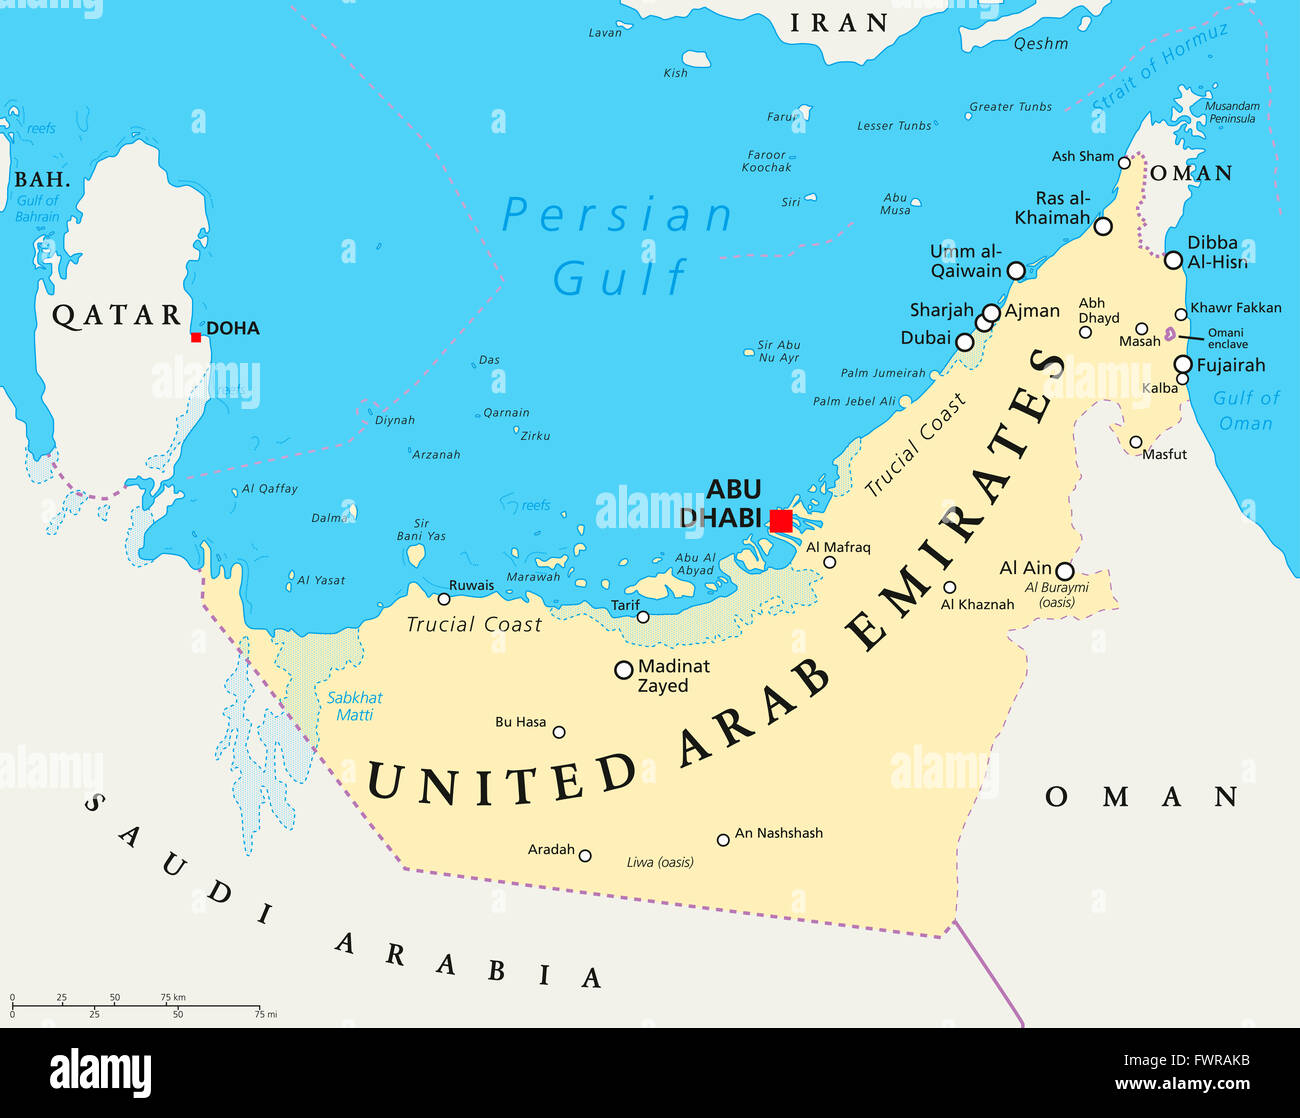 uae united arab emirates political map with capital abu dhabi national borders important cities and bodies of water english